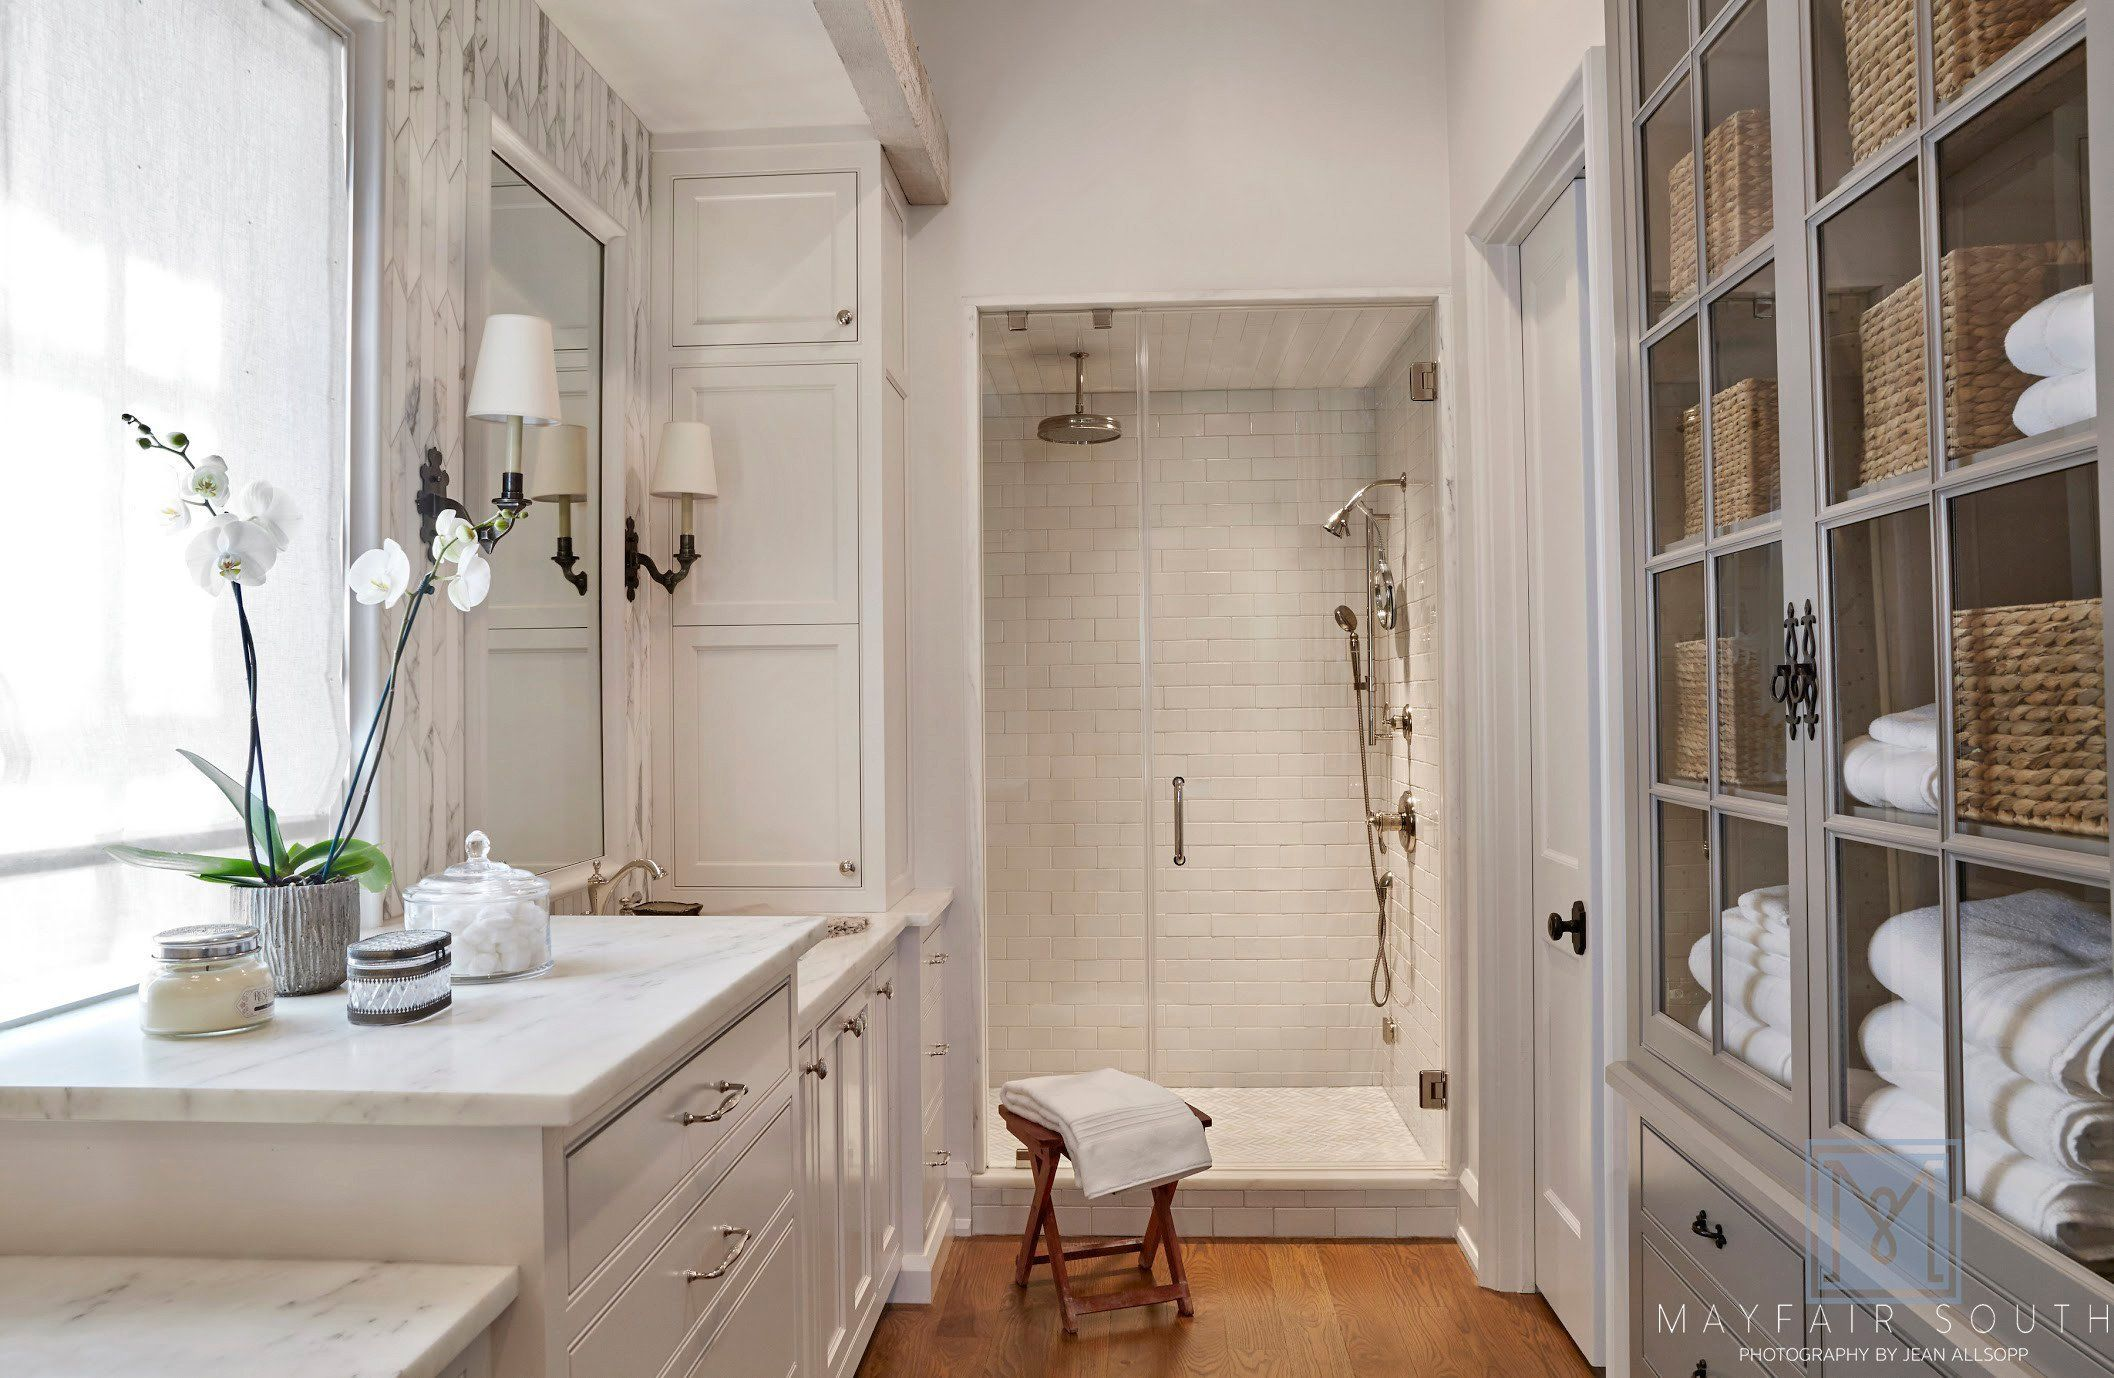 rehabbed home noahsbark tub depot bathroom remodeling excellent showers of bathtub liners related birmingham biz cost and to tile bathroomawesome costs mountain al remodel fresh redo porcelain smoky bathtubs refinishing excel estimator